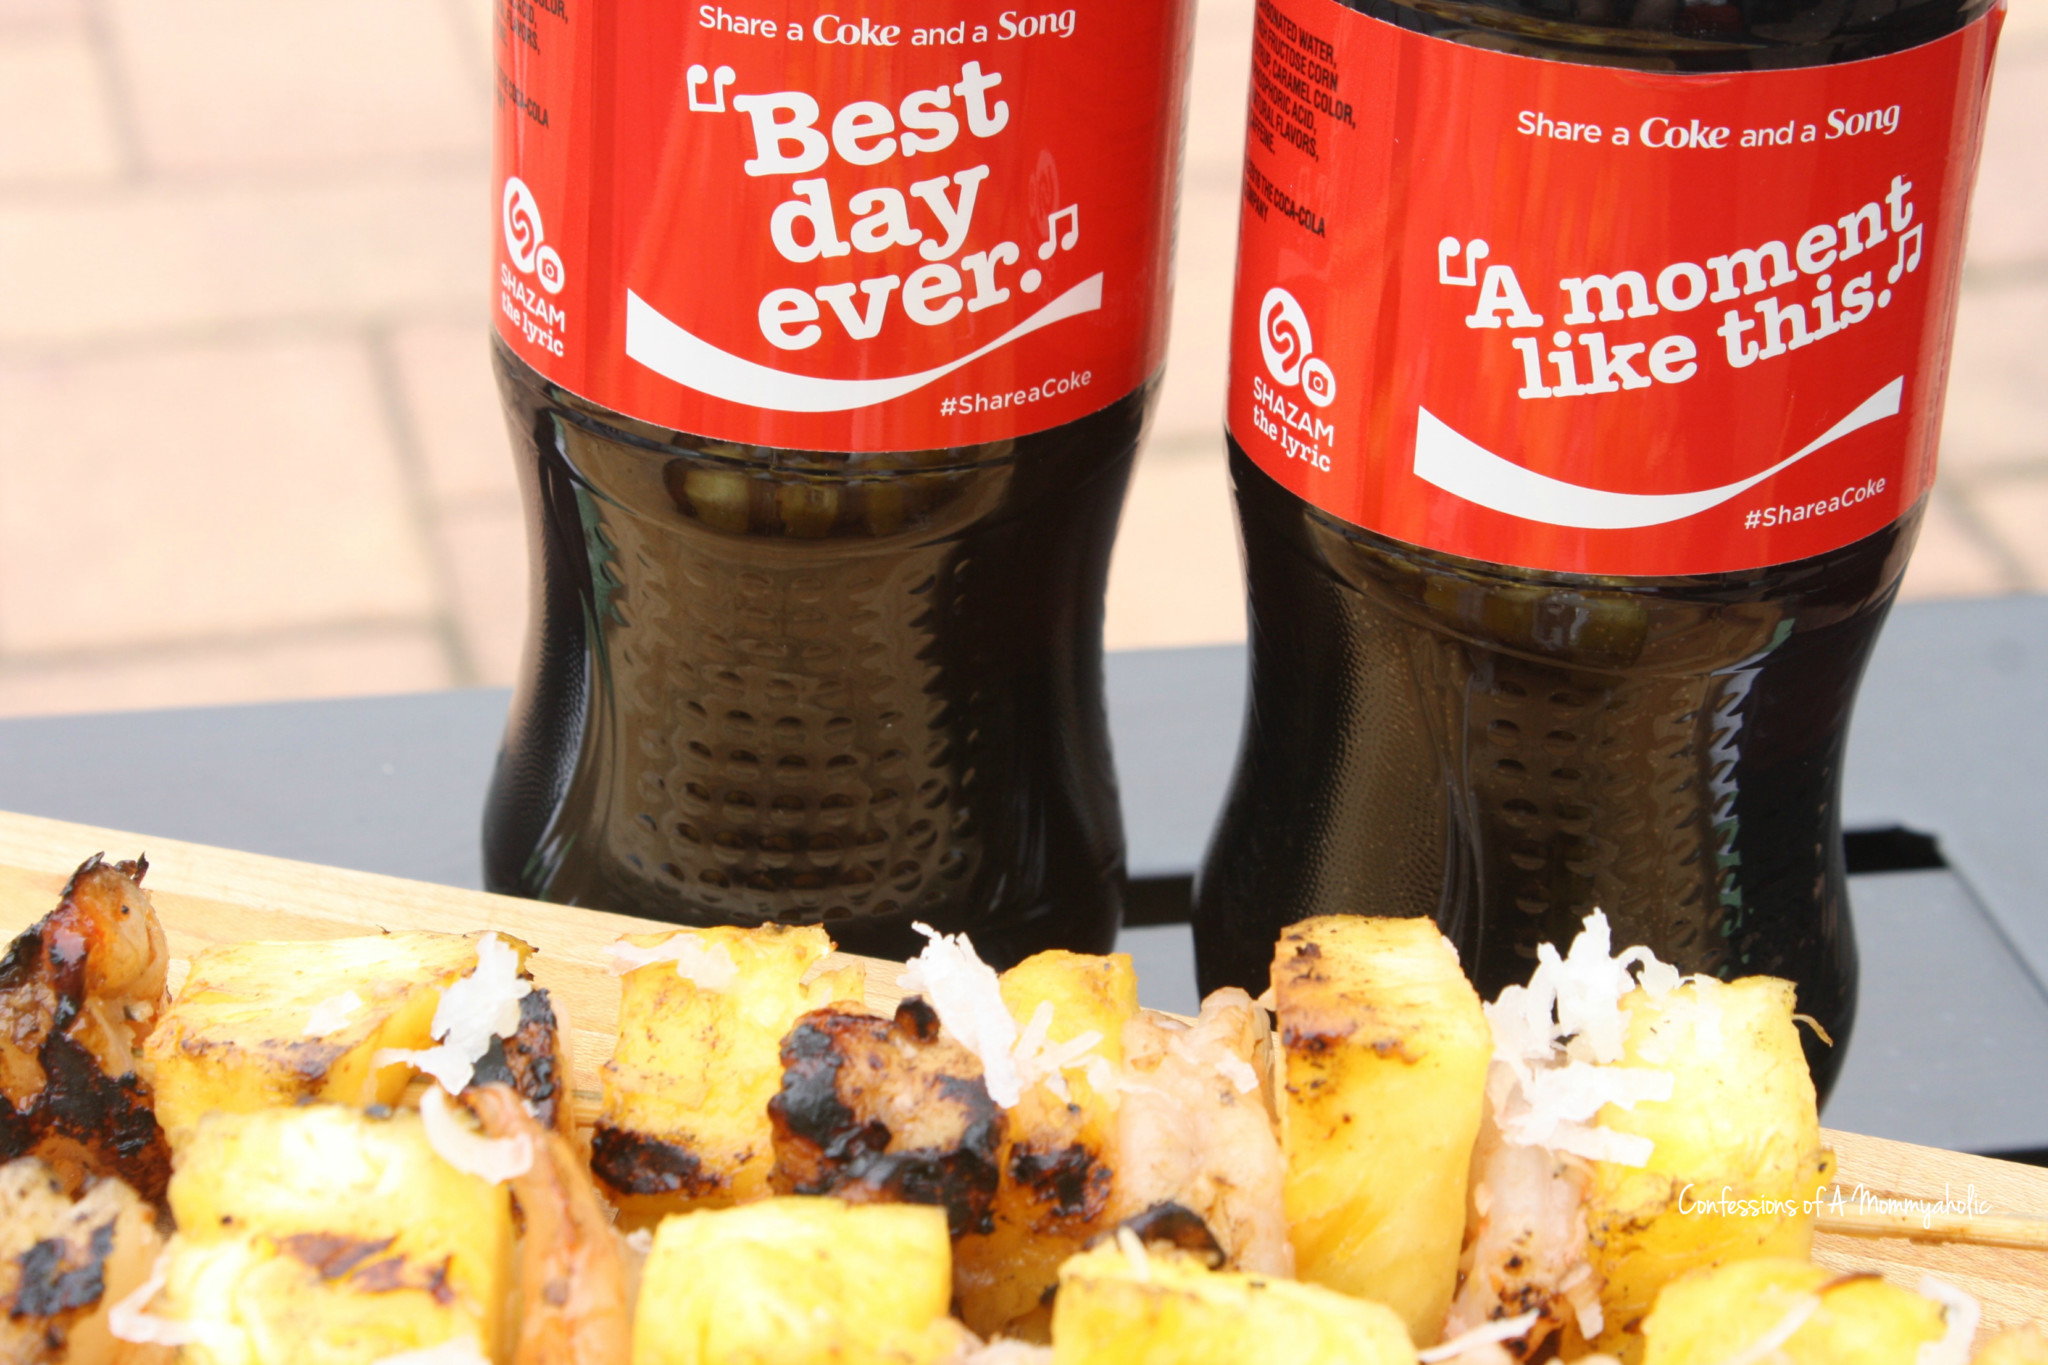 Share A Coke and a Song and Grilled Coconut Shrimp and Pineapple